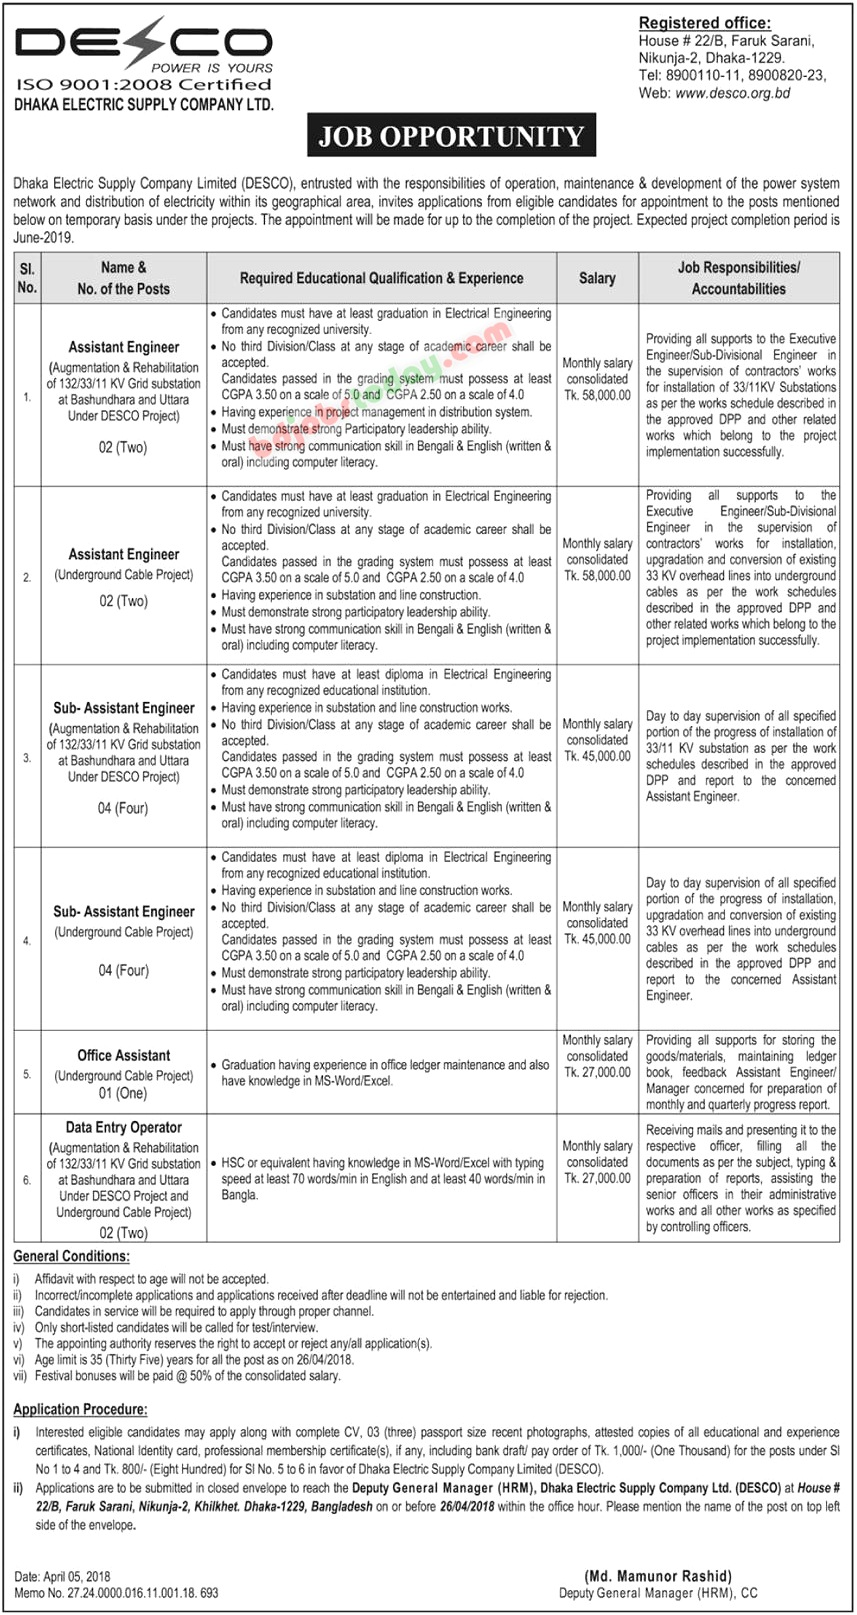 Dhaka Electric Supply Company Ltd-DESCO jobs